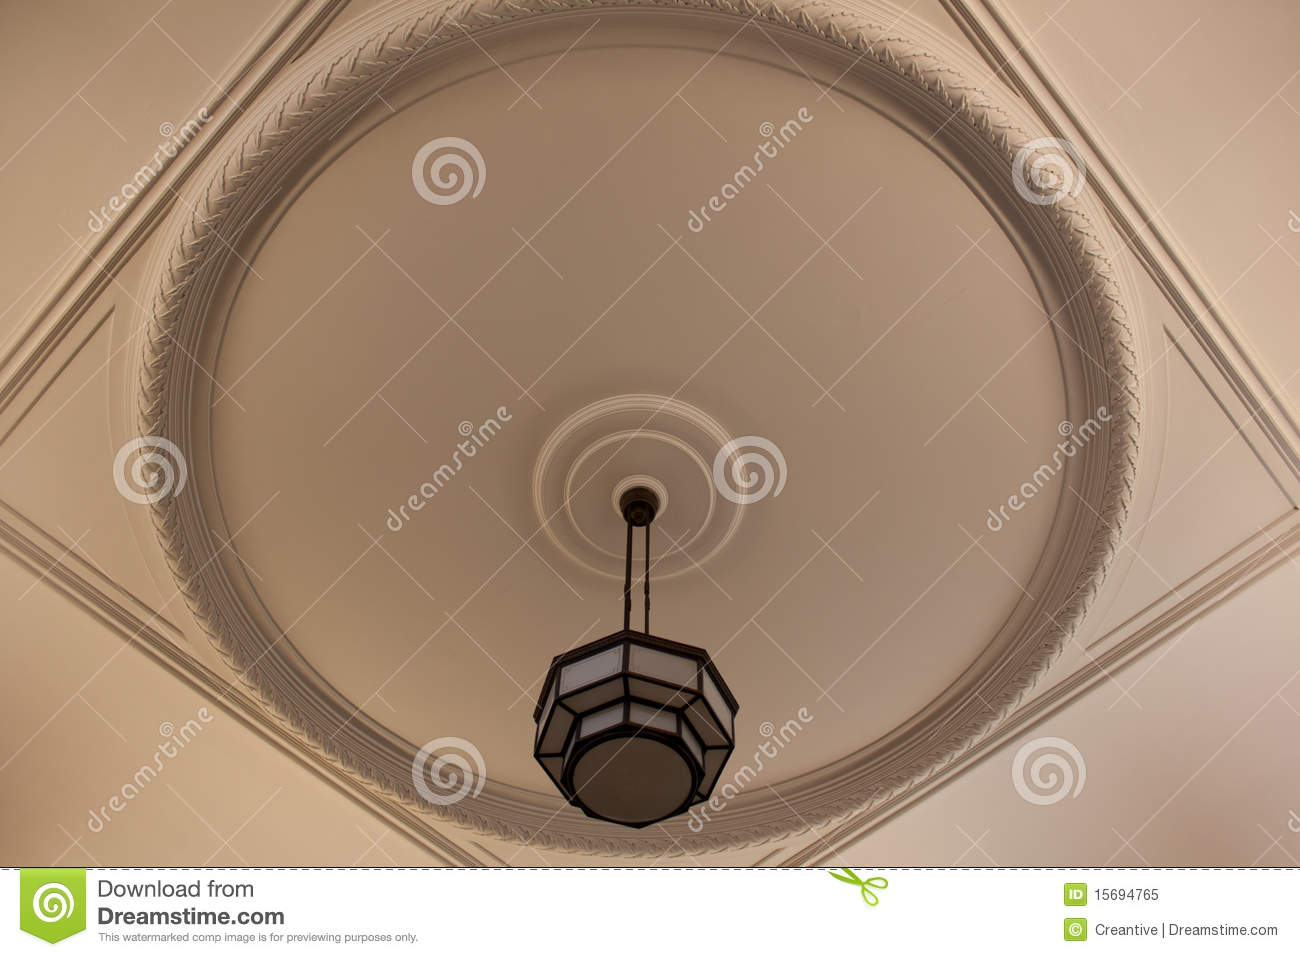 round ceiling royalty free stock photo image 15694765